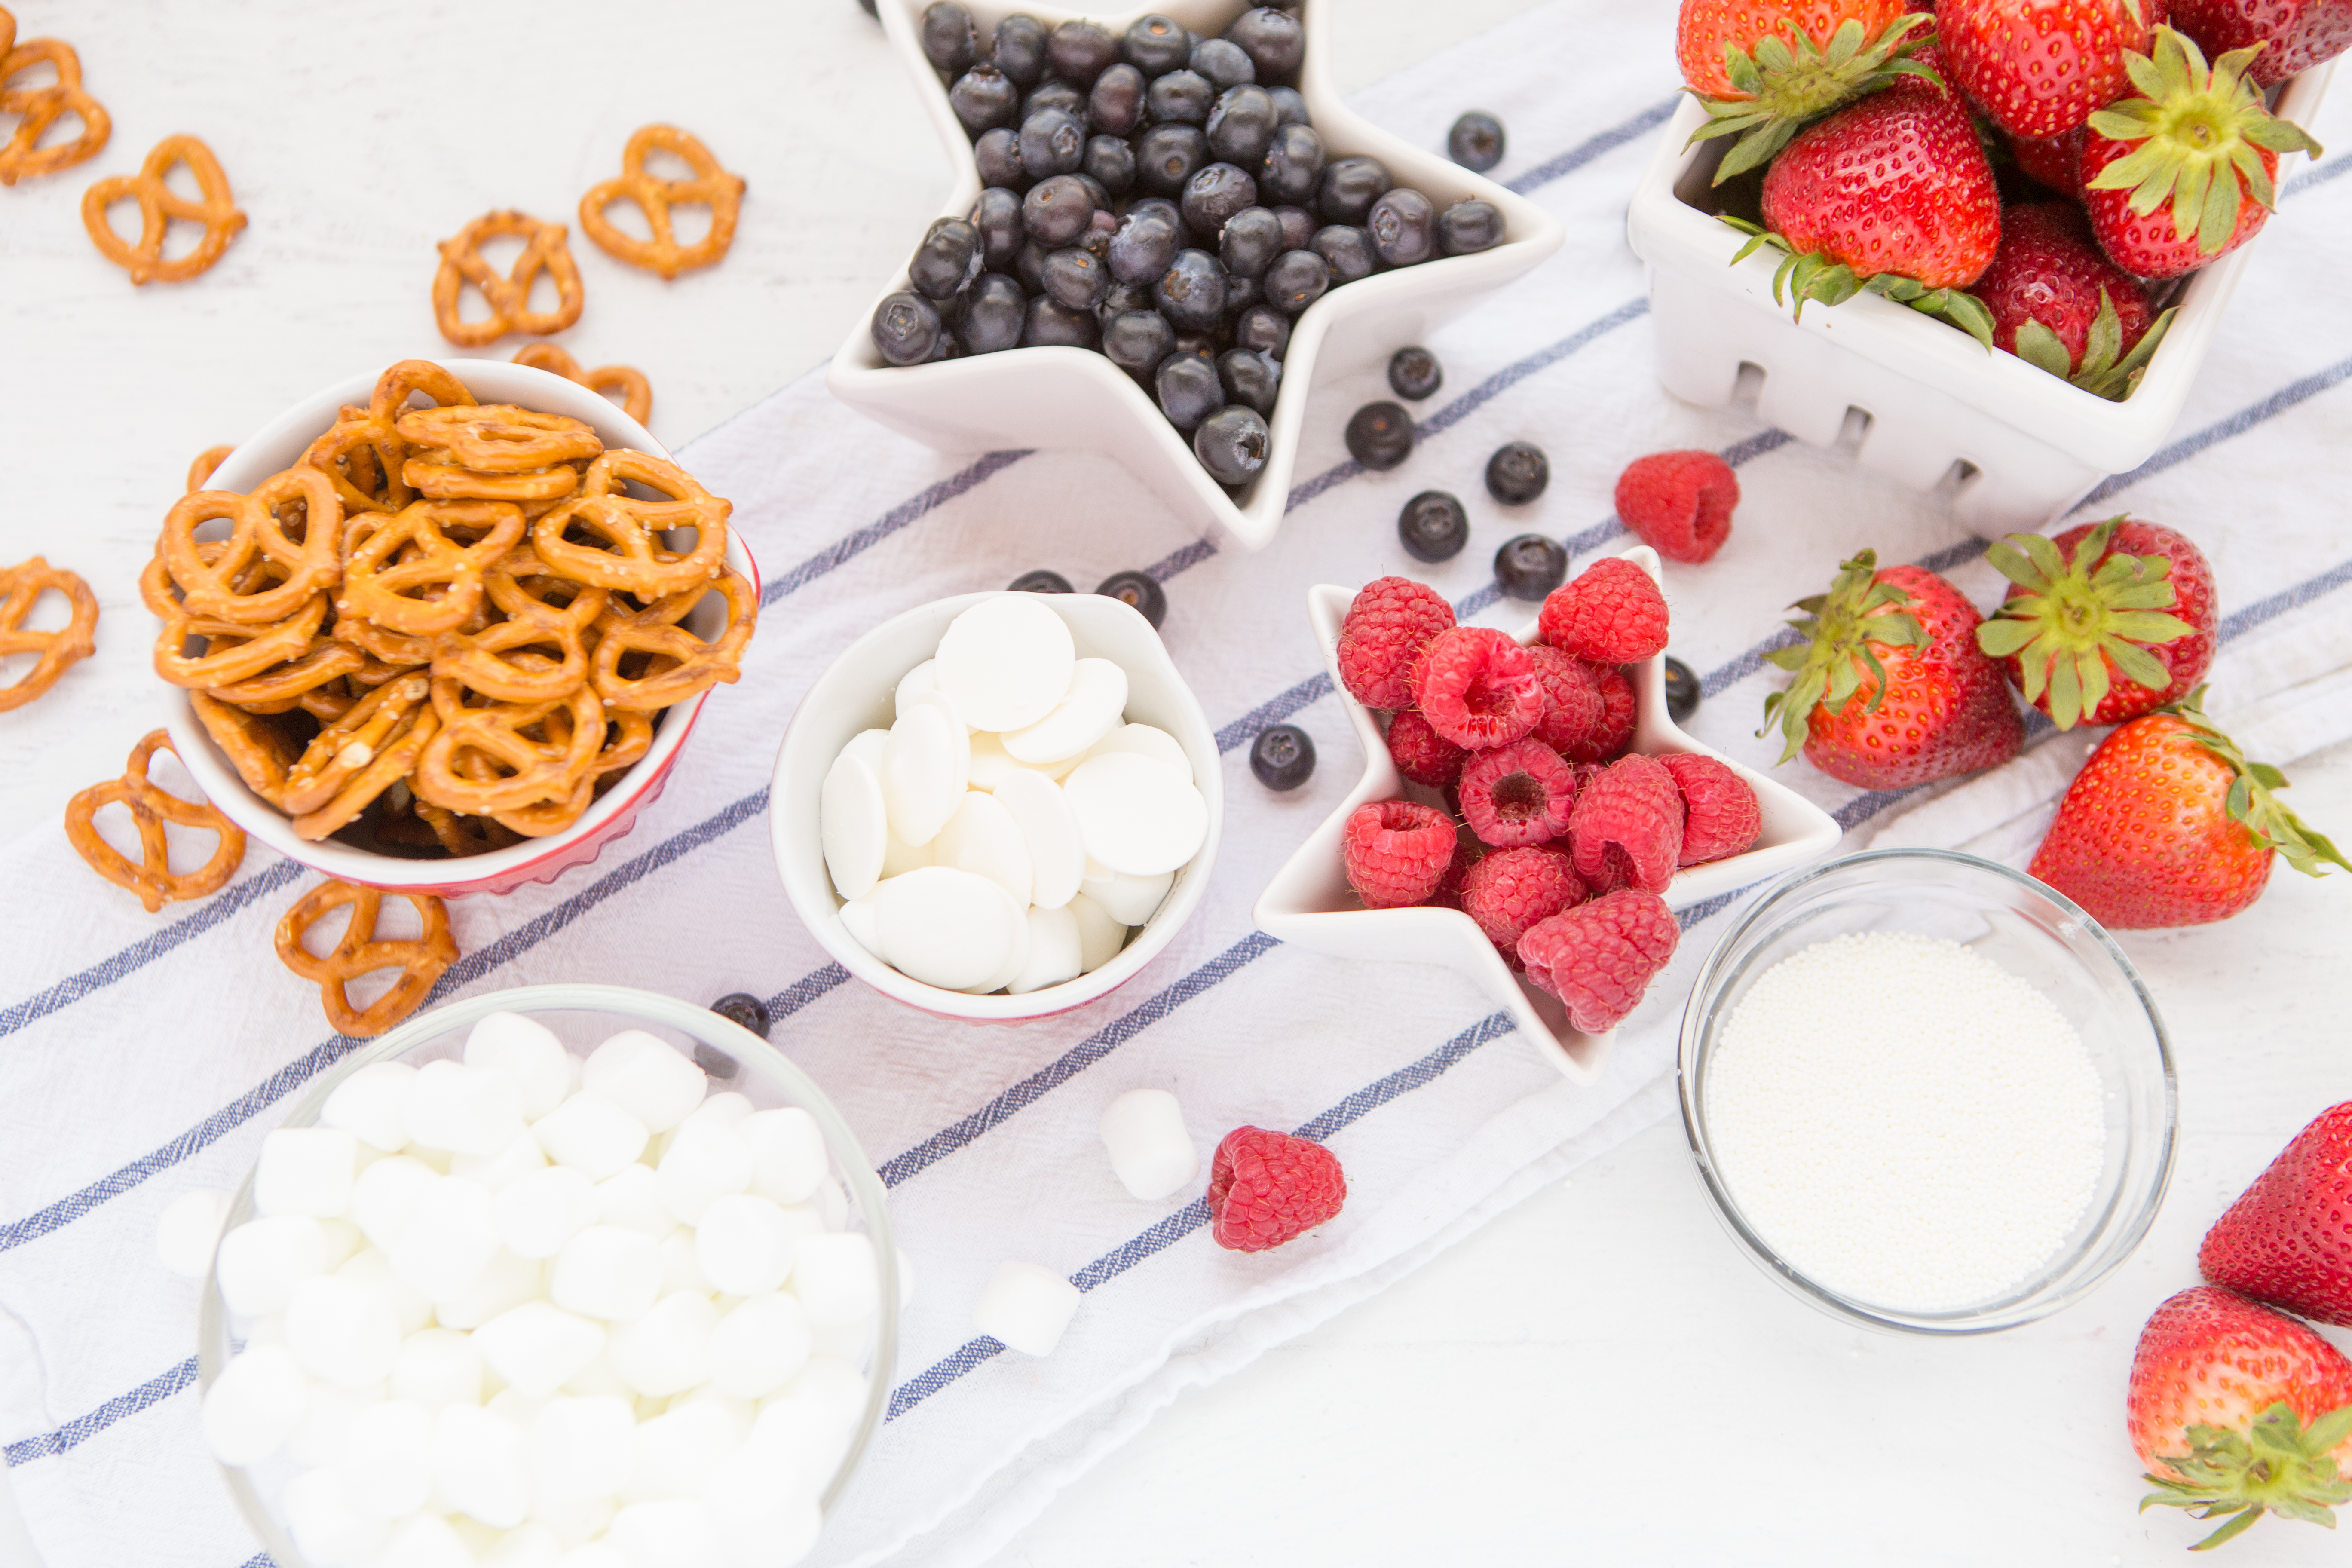 Berries, Pretzels and White Chocolate Ingredients